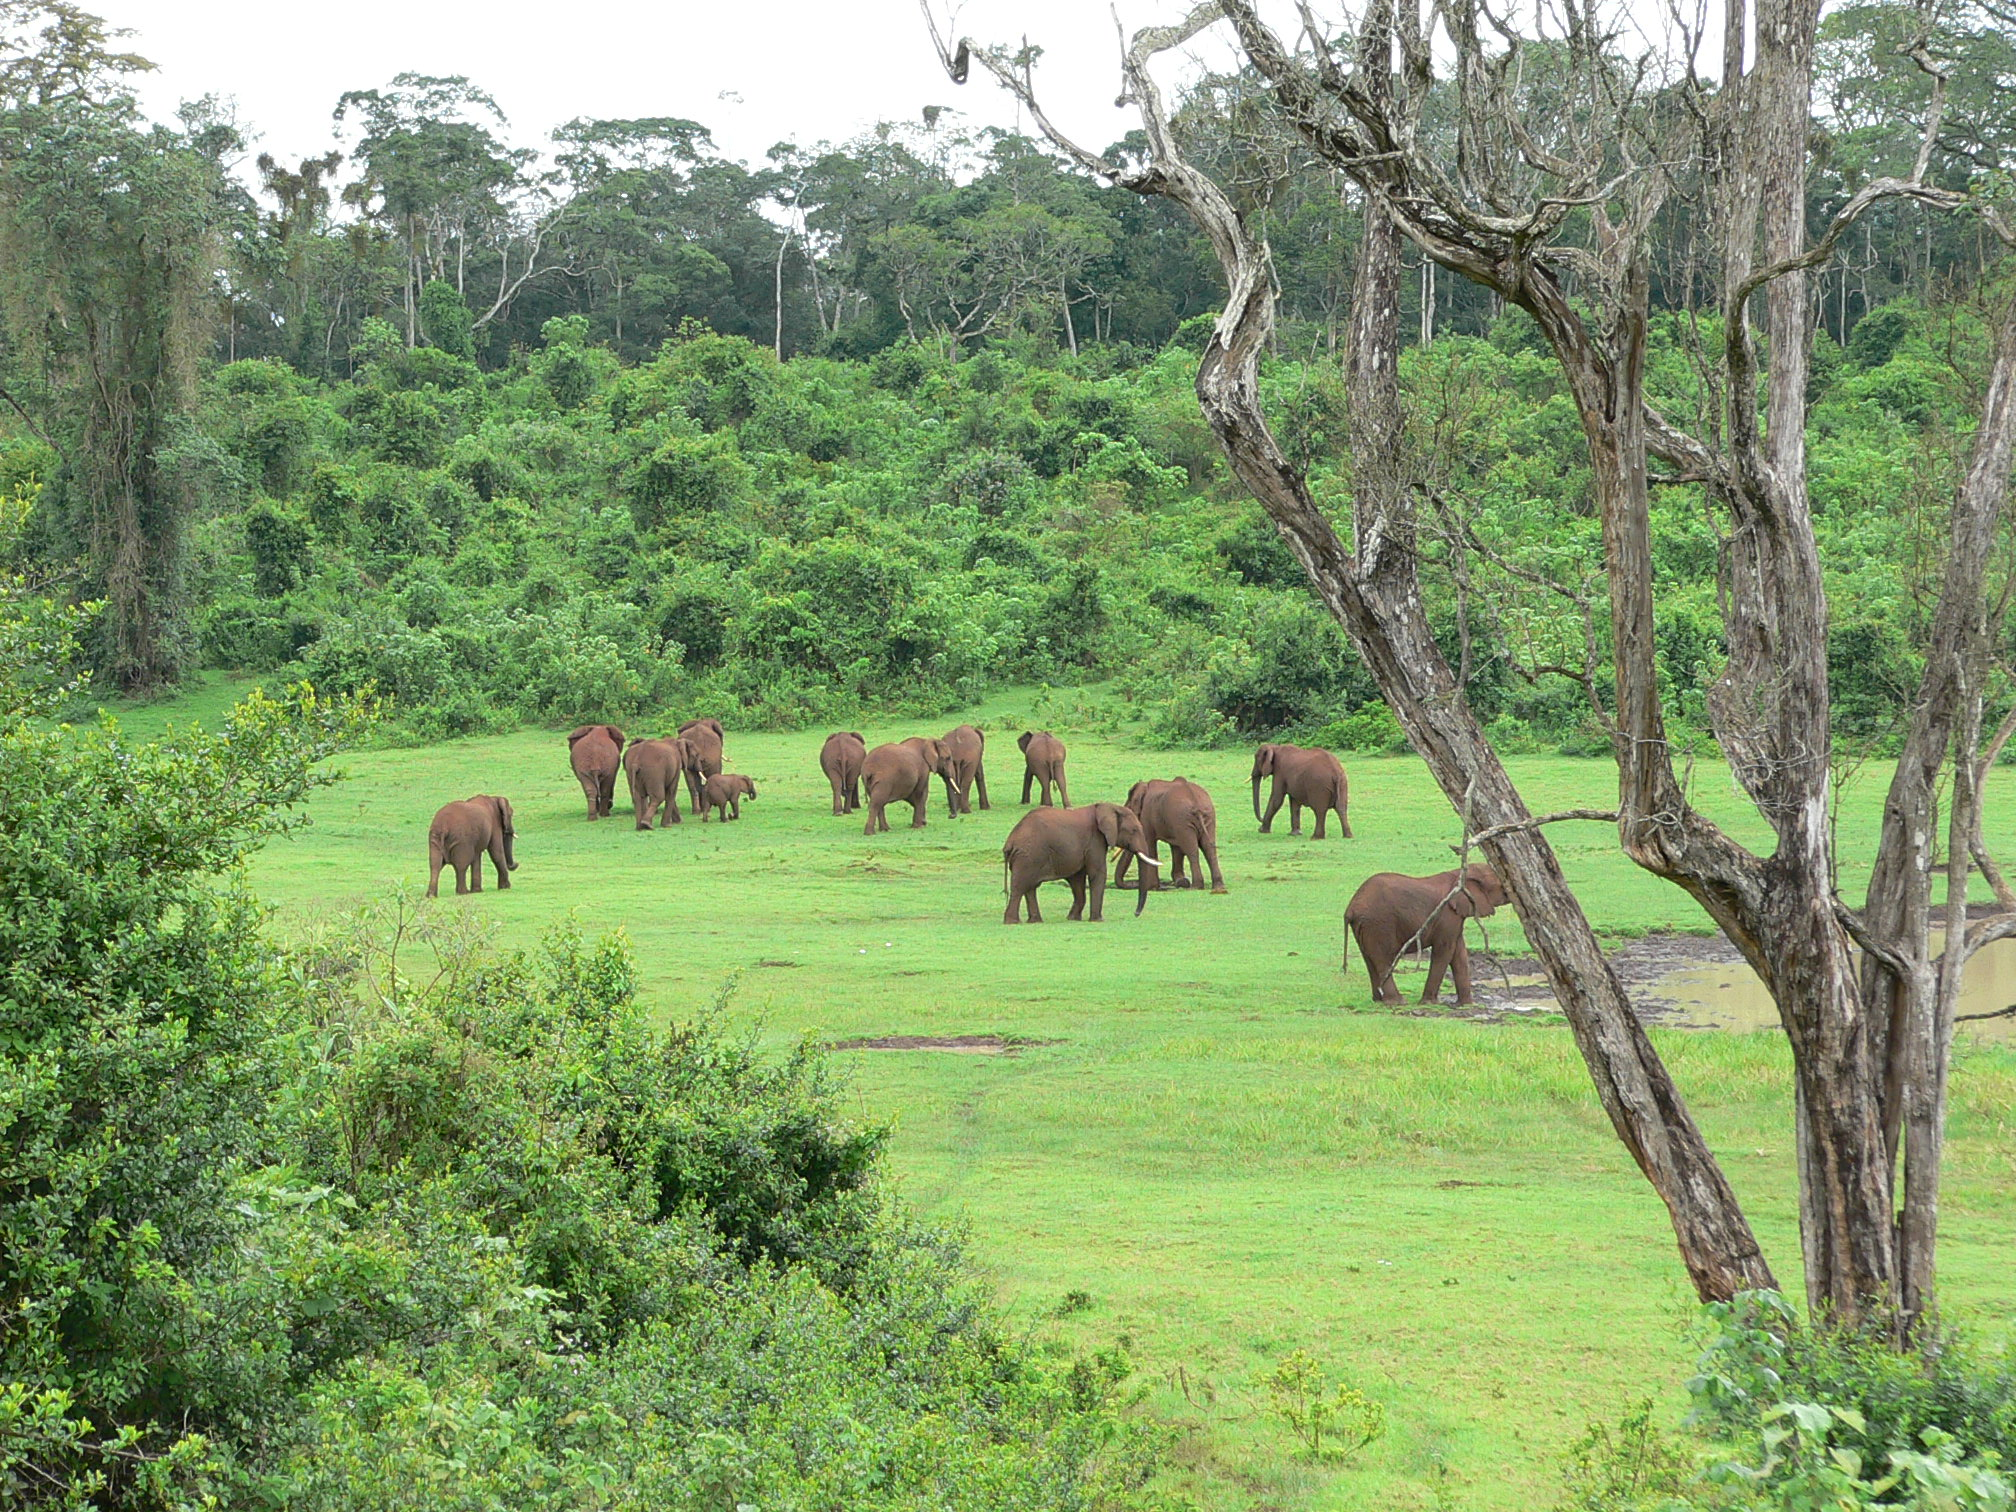 Elephants protected by the Aberdare fence